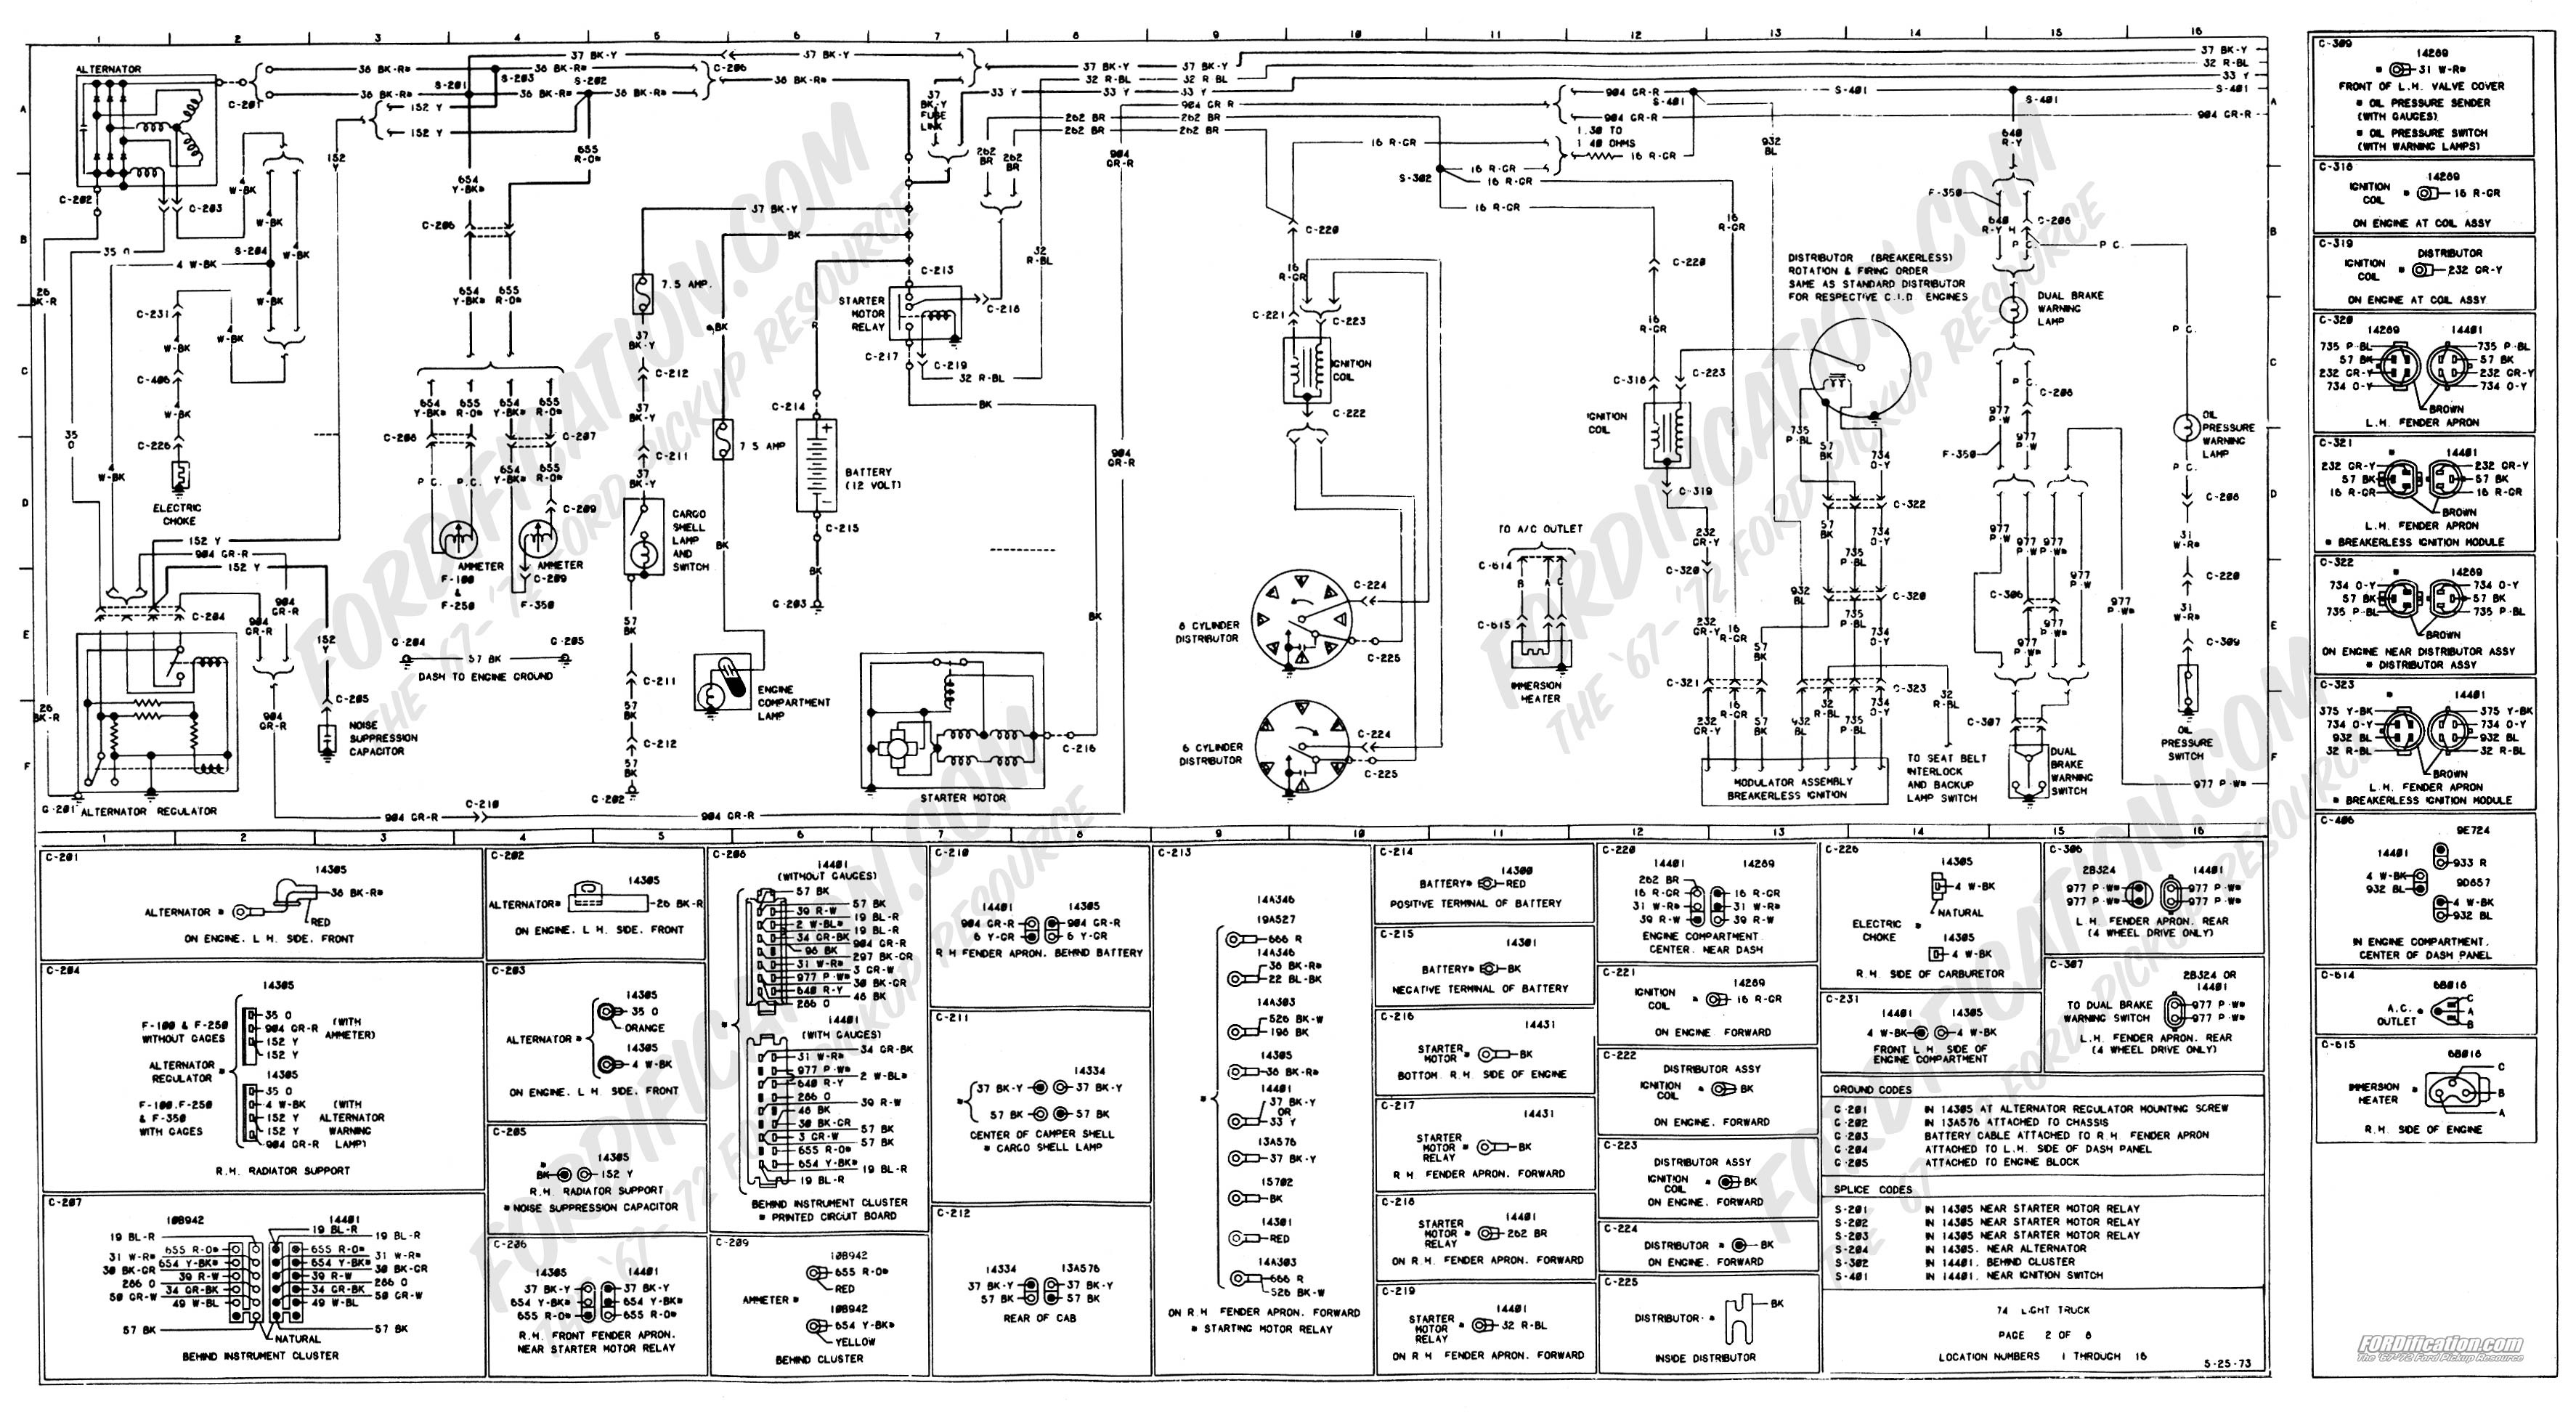 99 sterling truck wiring diagram 1973 1979 ford truck wiring diagrams amp schematics fordification of 99 sterling truck wiring diagram?quality=80&strip=all dodge engine schematics auto electrical wiring diagram